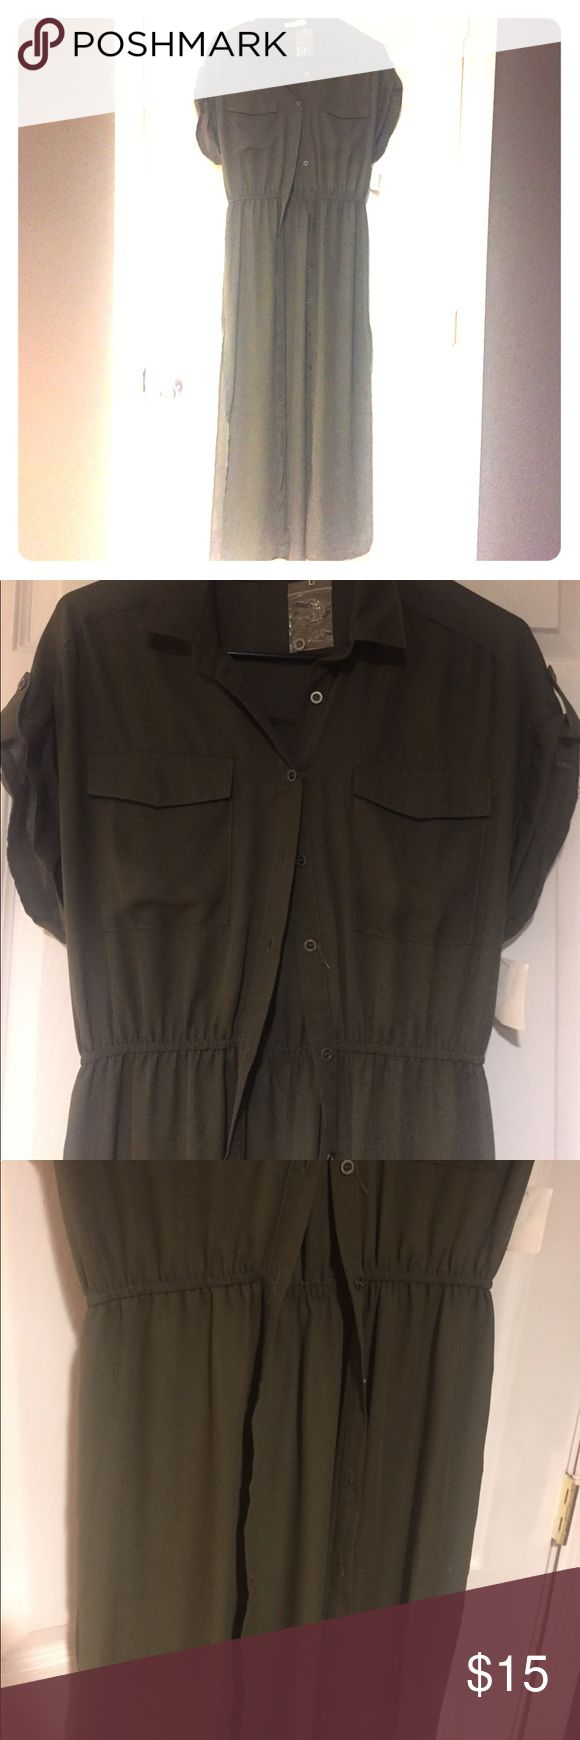 Long sheer button down dress/coverup Olive green open front trench length dress to pair with a bandeau and Lycra shorts for a sexy/classy look. Or you can wear open over a bikini. Brand new with tags. Purchased at Century 21. Lush Dresses